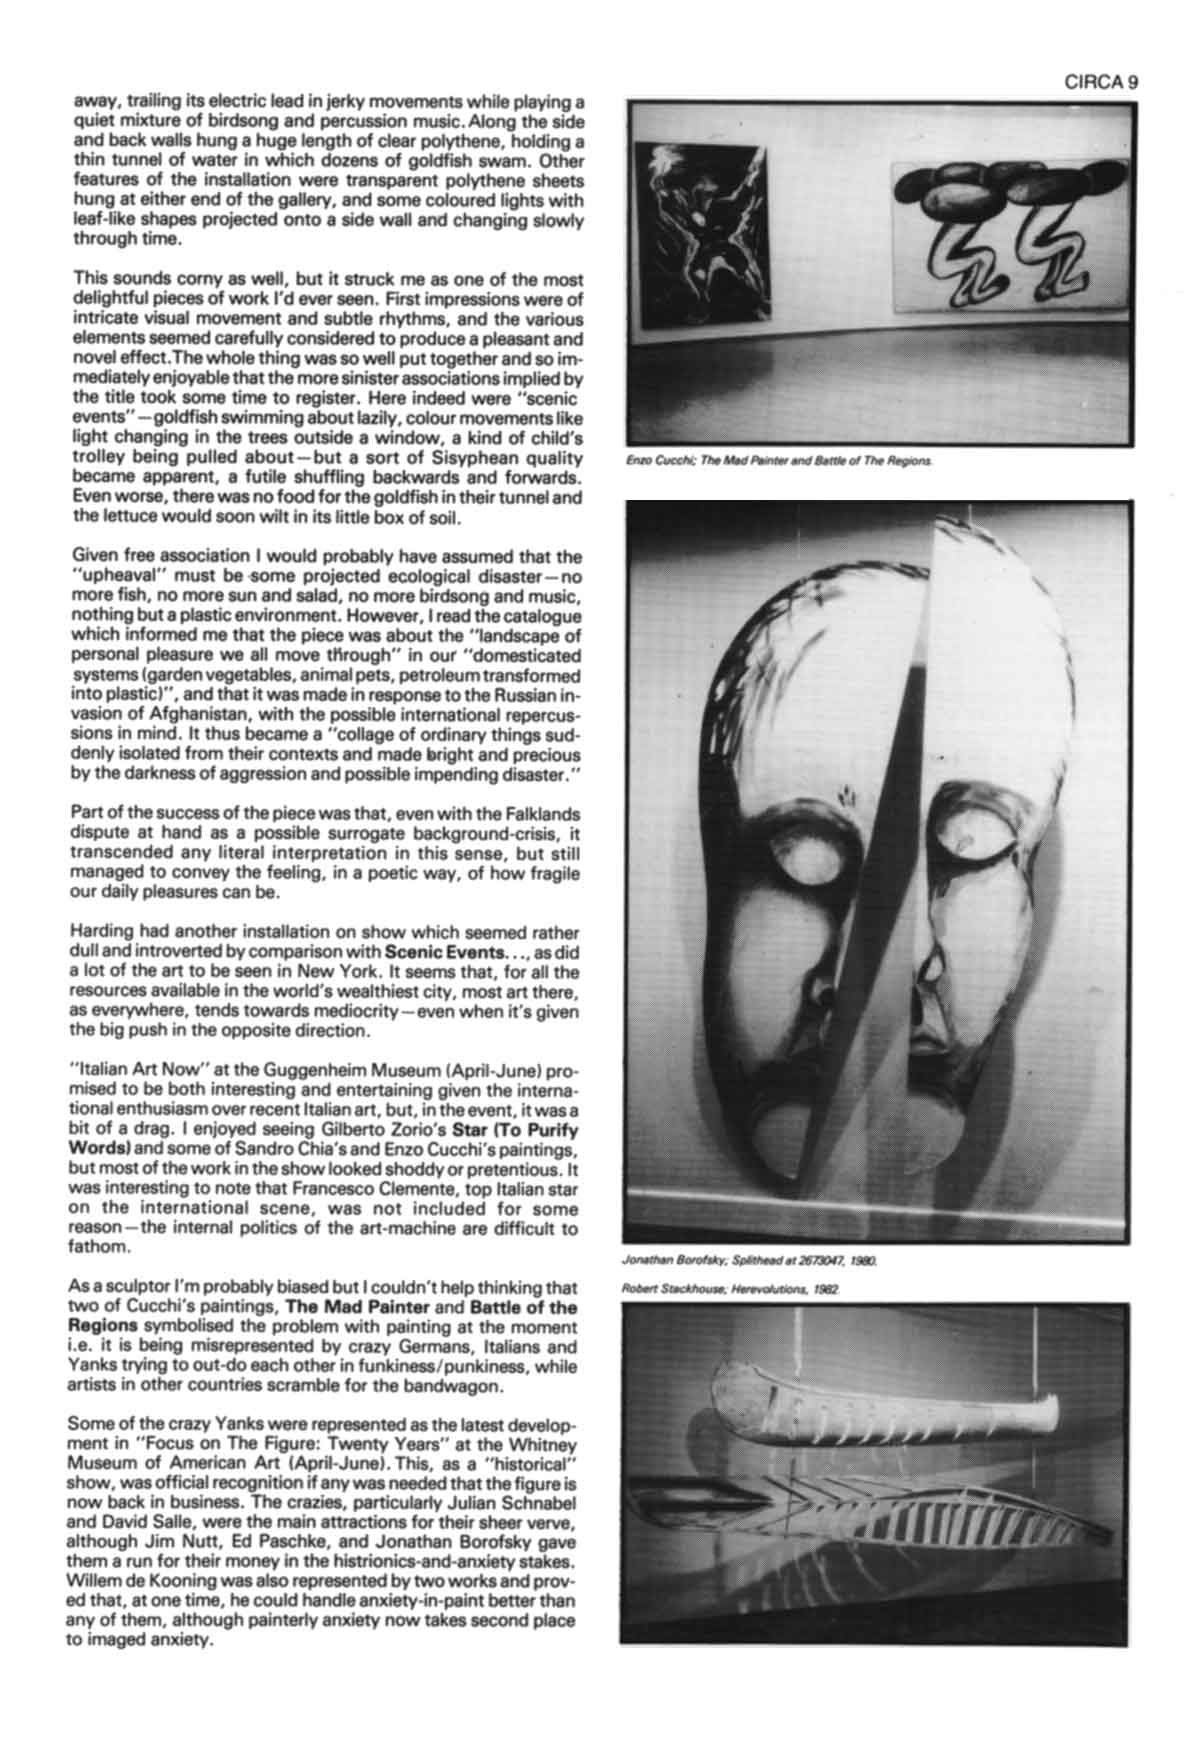 CIRCA Issue #5: Lofting It - Micky Donnelly